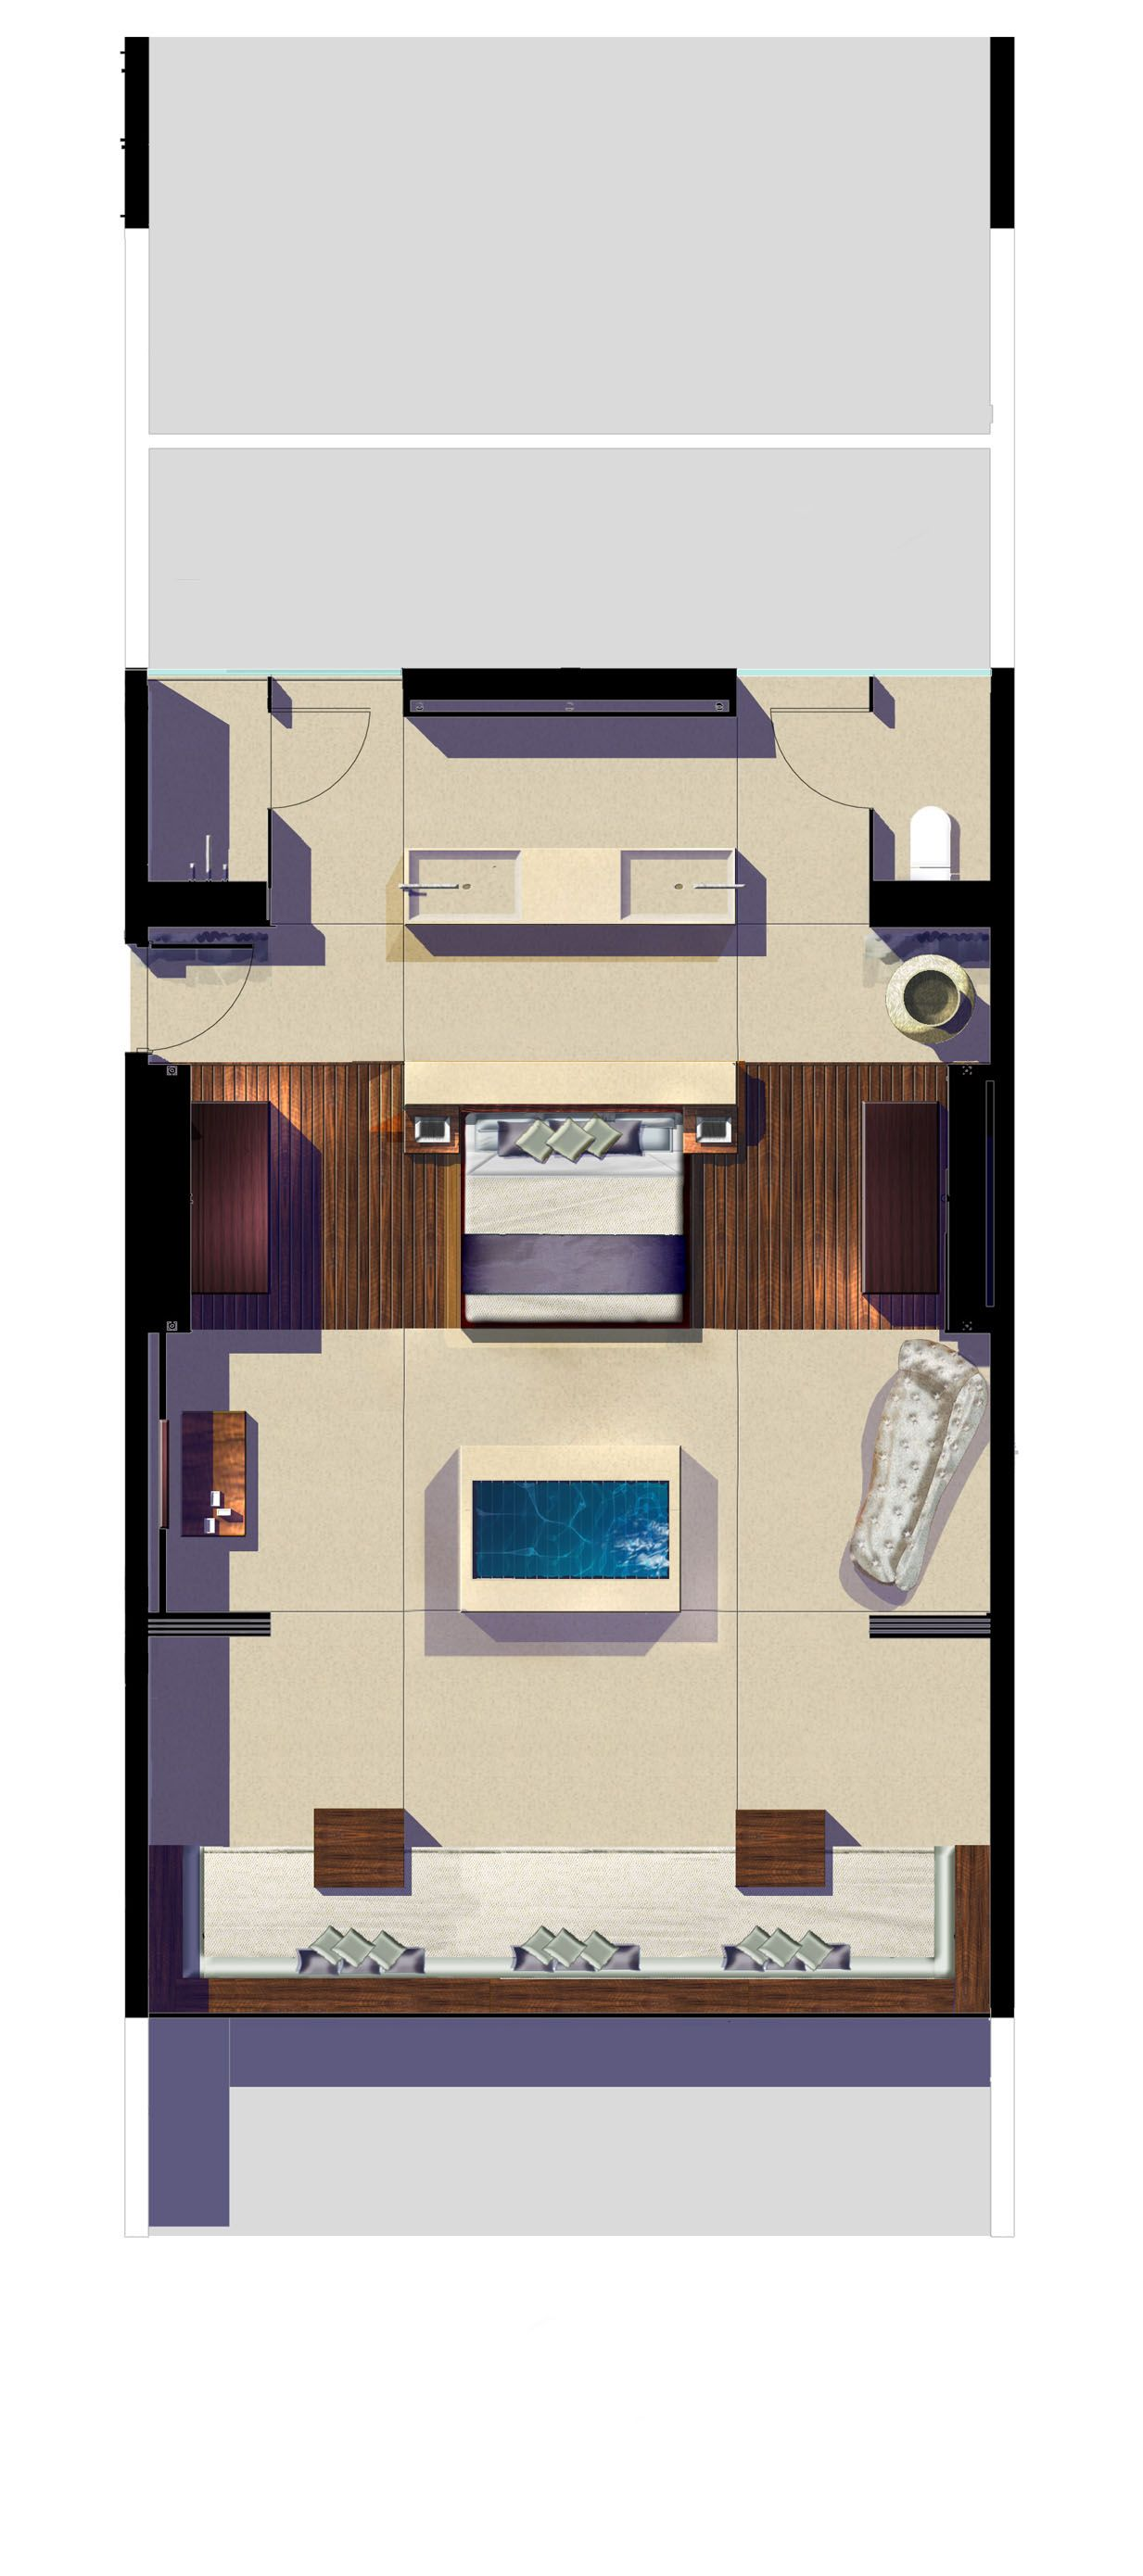 Hotel room furniture layout - Hilton Hotel Fiji Suite Top Floor Concept Plan